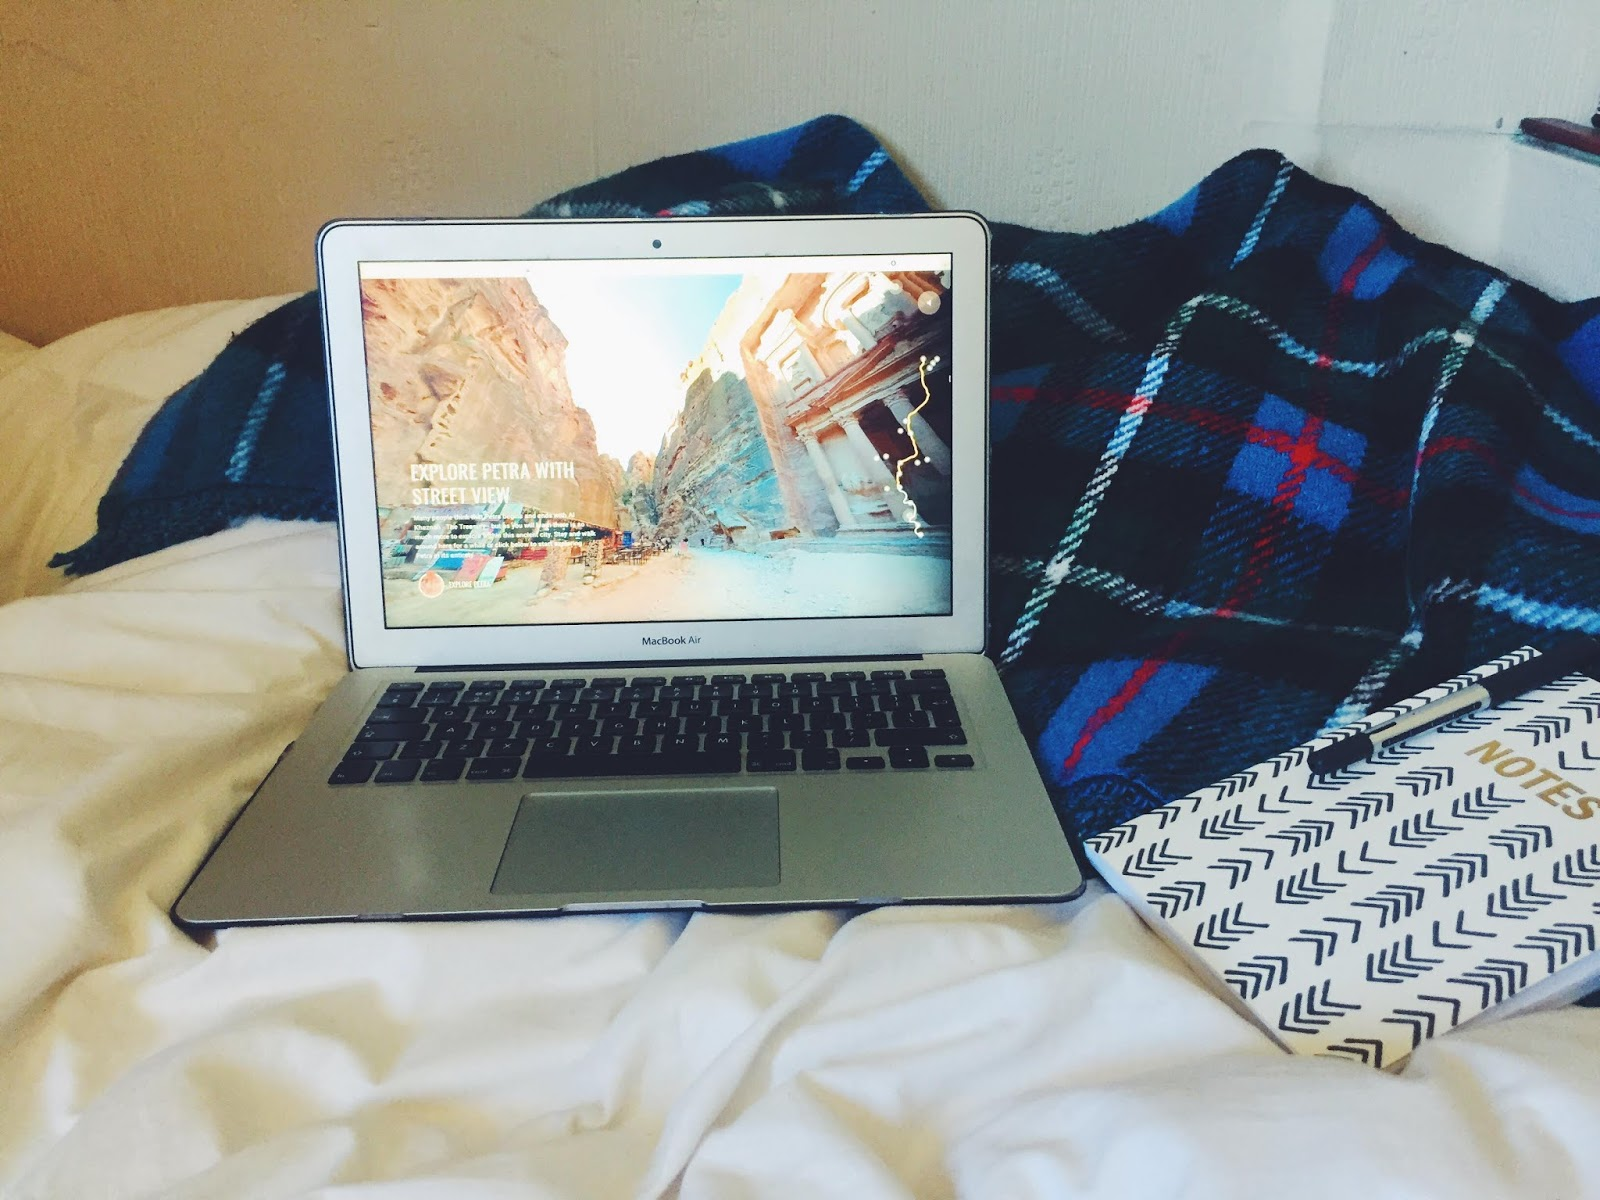 Laptop on bed with virtual tour of Petra archaeological site on screen